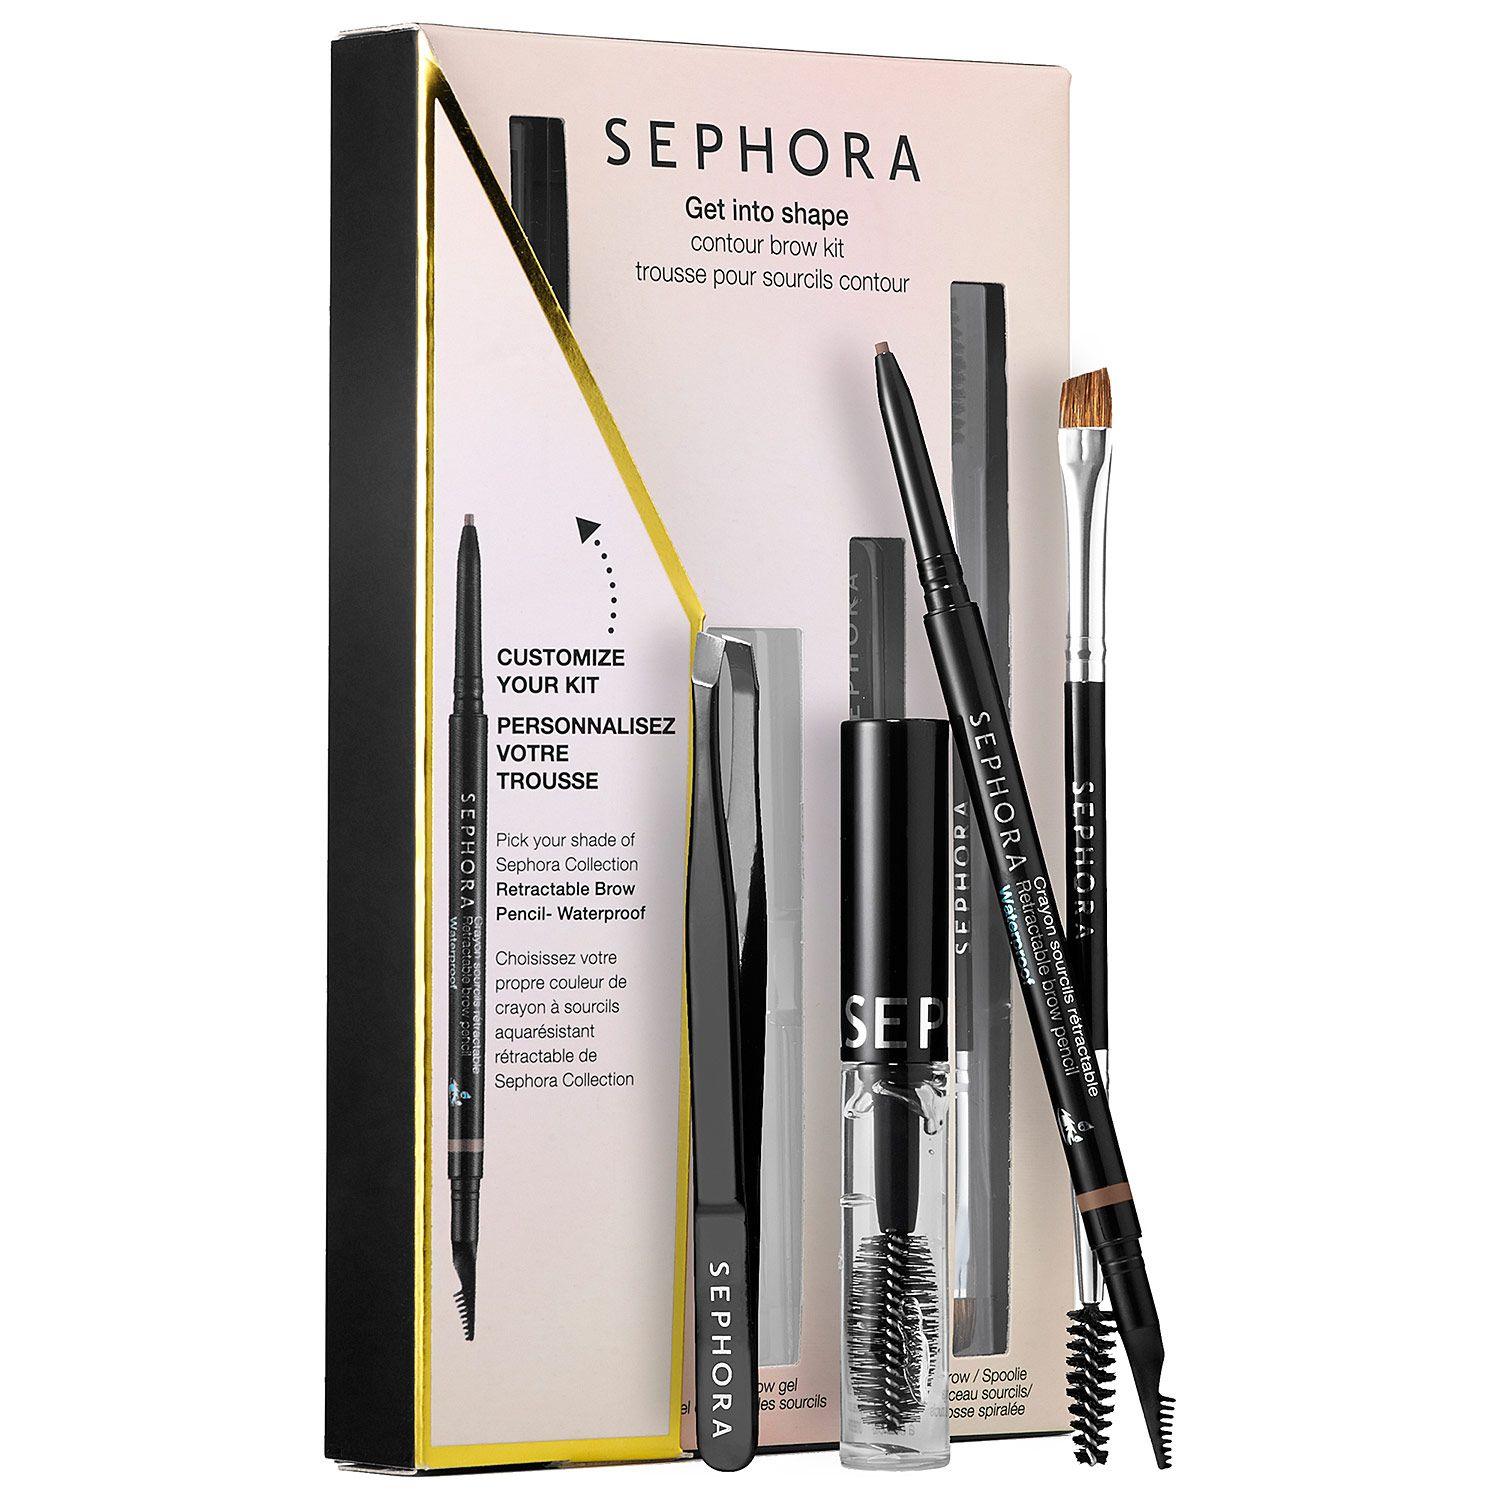 Sephora Collections Get Into Shape Contour Custom Brow Kit Is A